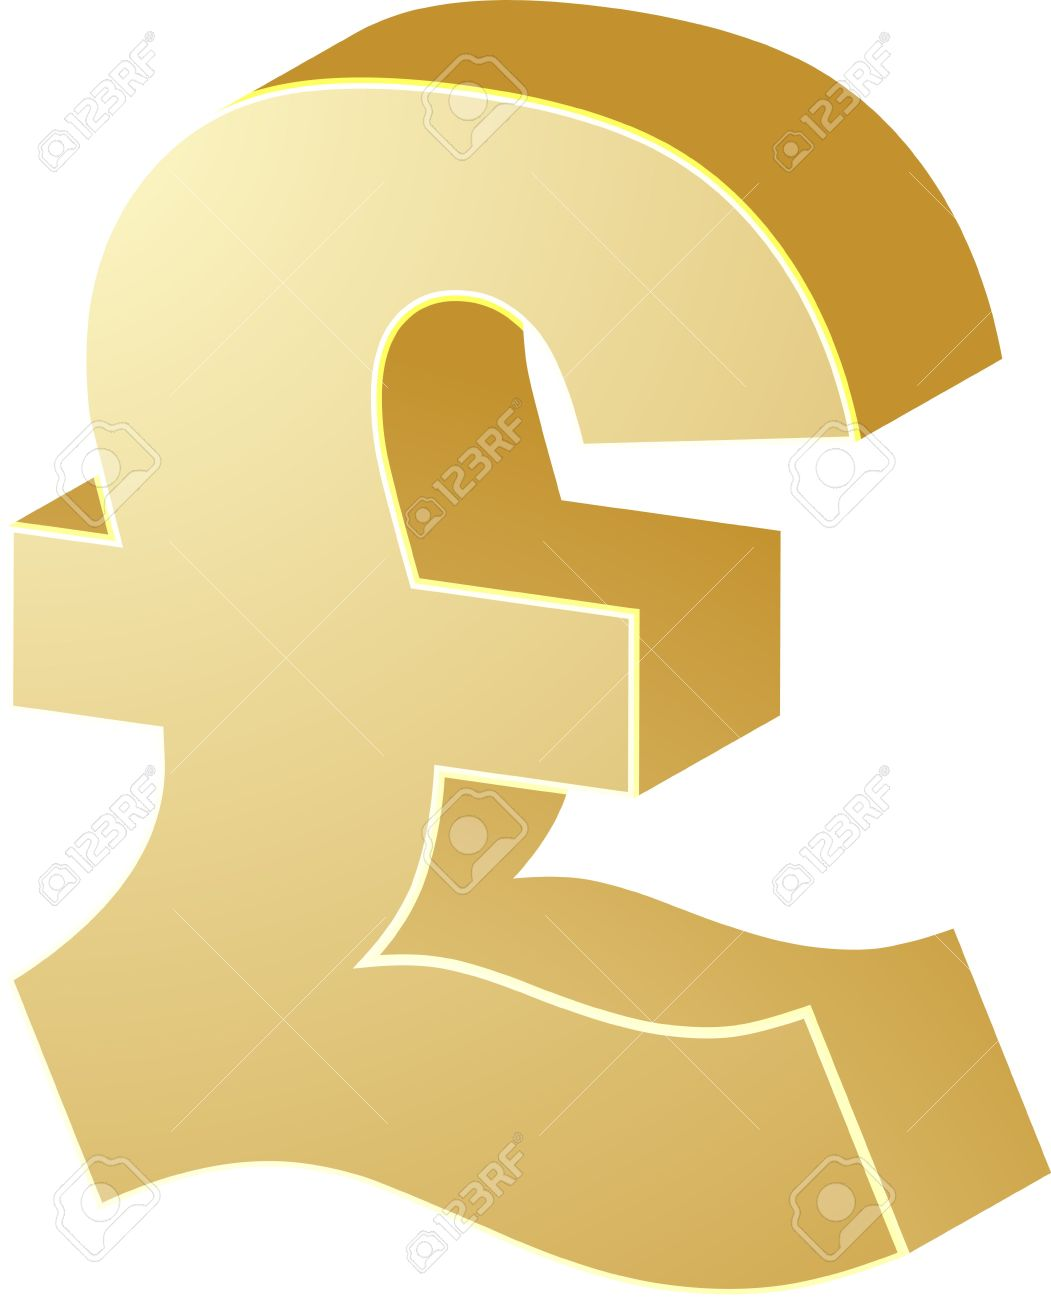 English cash clipart.